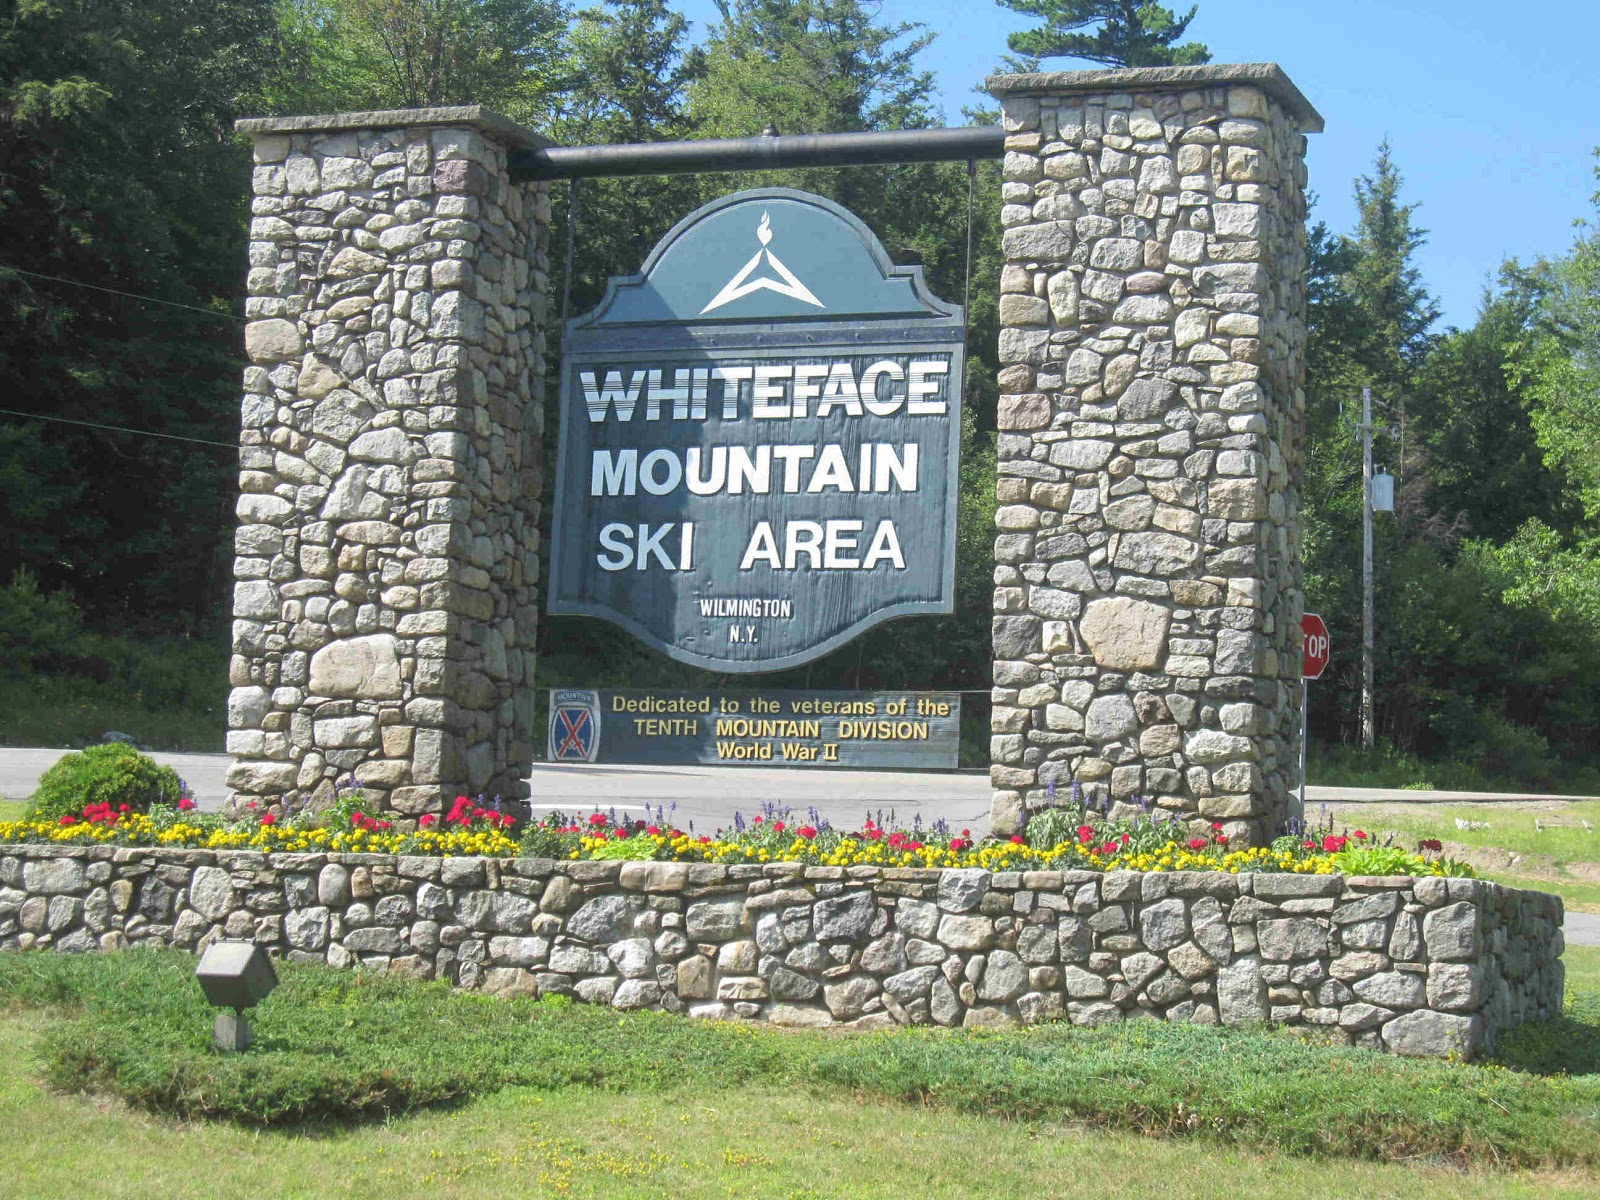 Whiteface rencontre